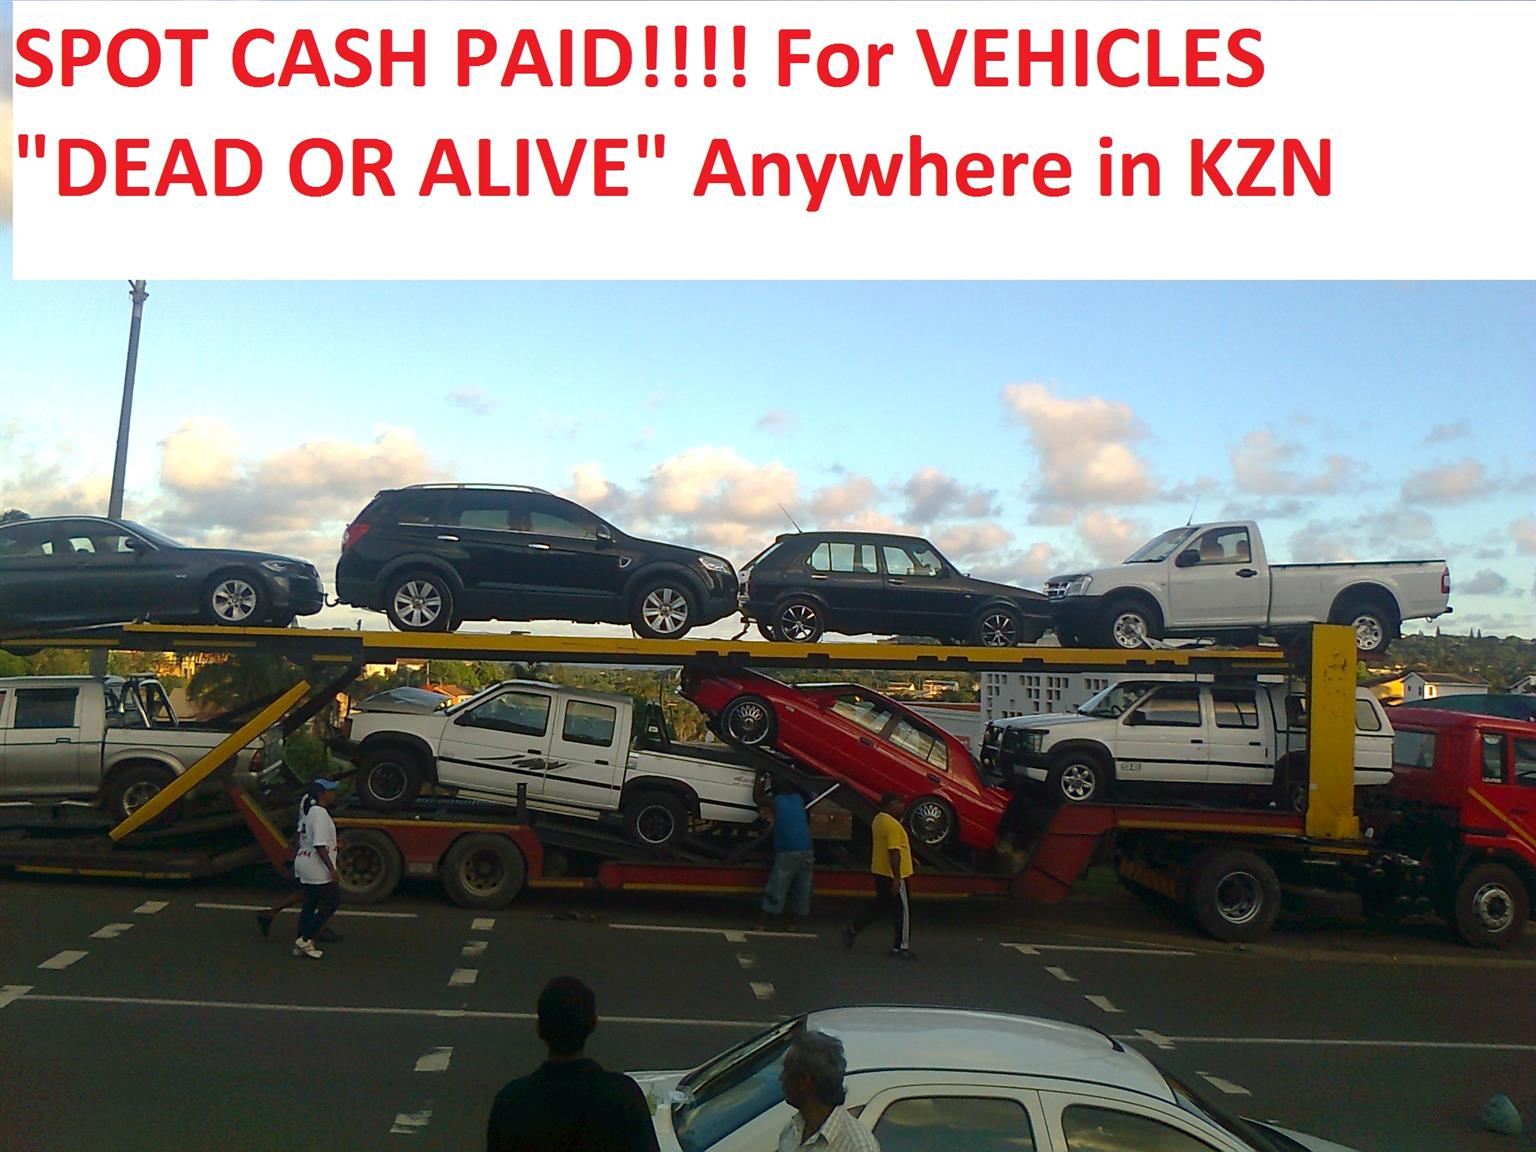 INSTANT CASH FOR YOUR CAR, ALIVE OR DEAD!